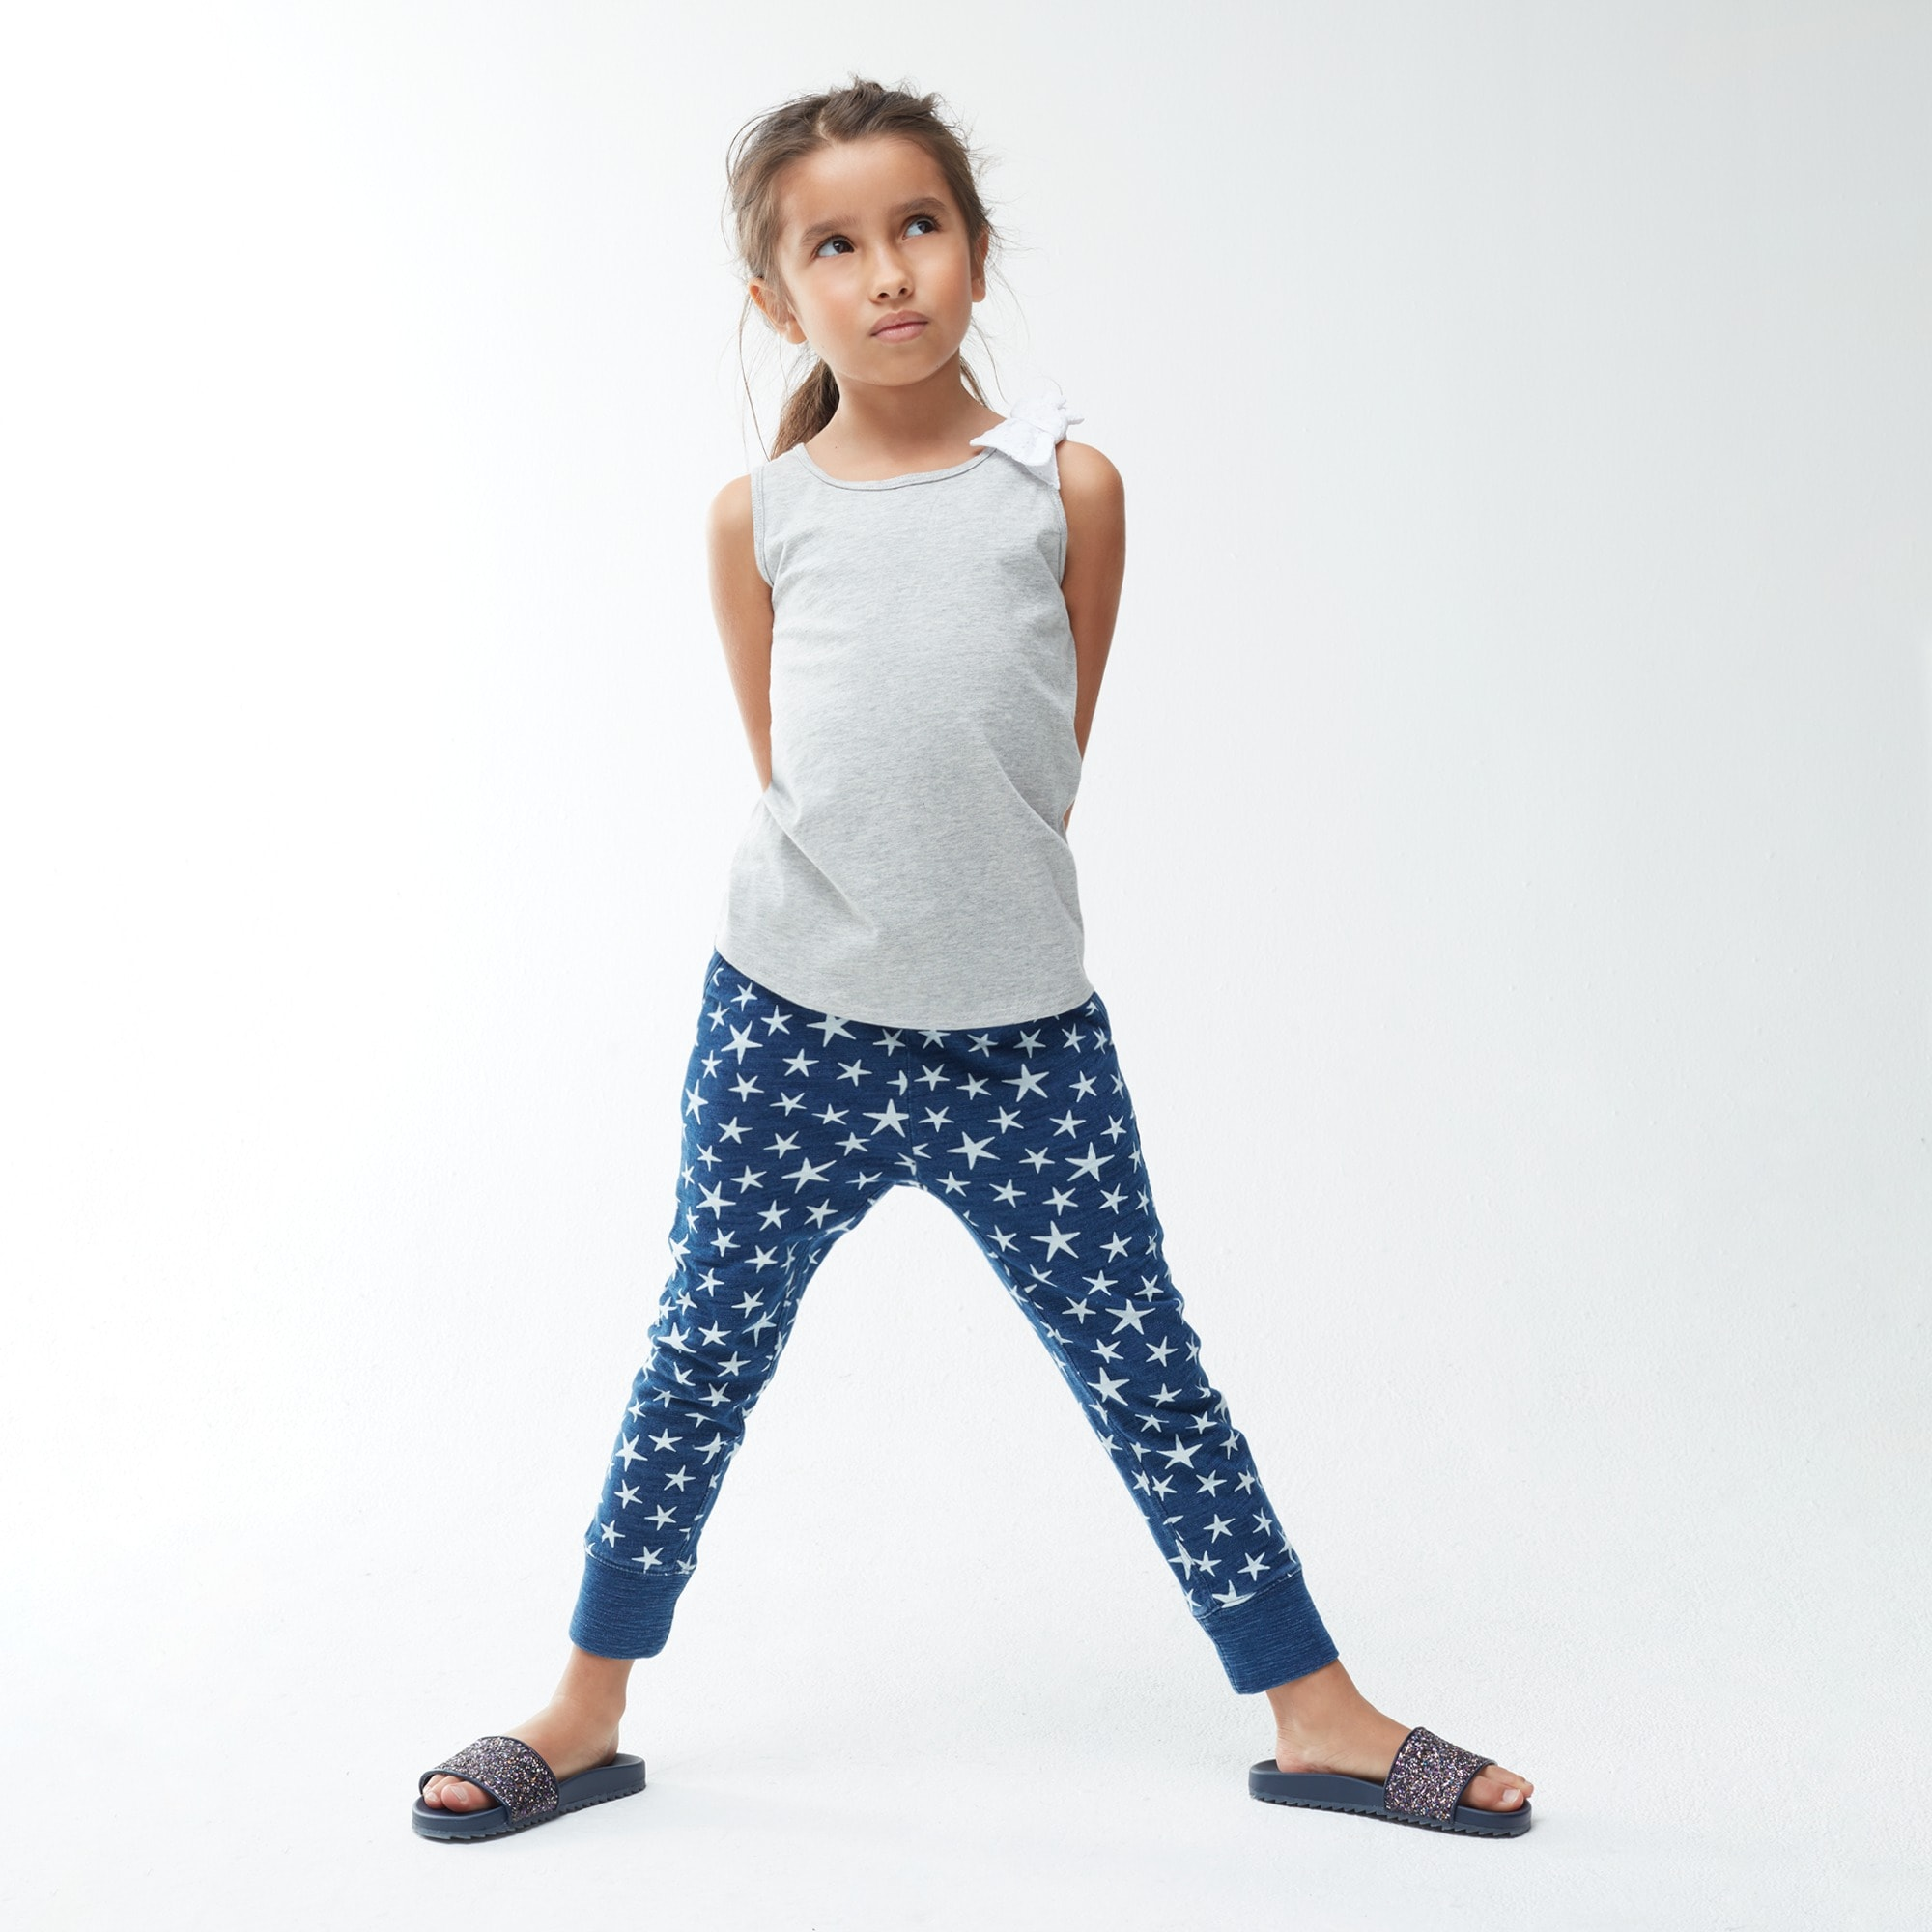 Girls' sweatpants in superstars girl new arrivals c